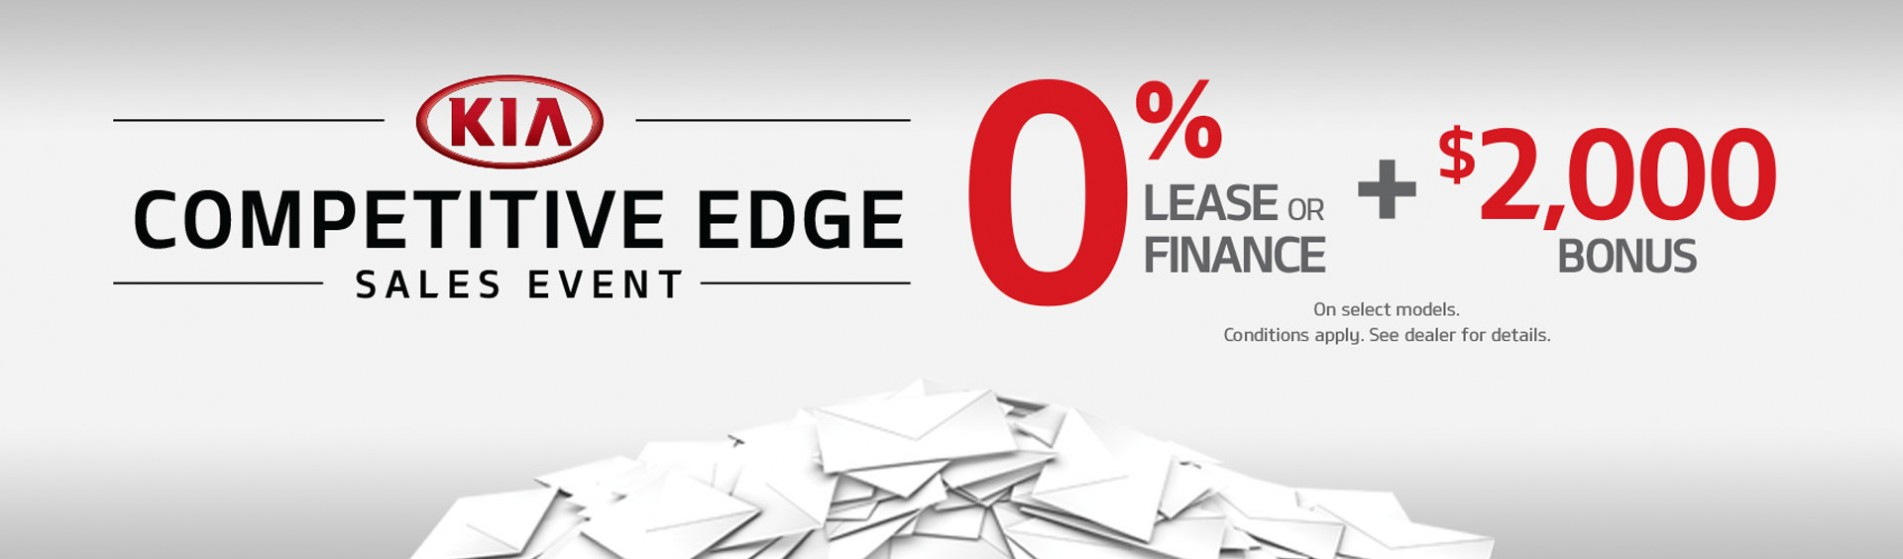 KIA Competitive Edge Sales Event 0% Lease or Finance plus $2000 bonus. On select models. Conditions apply. See dealer for details.